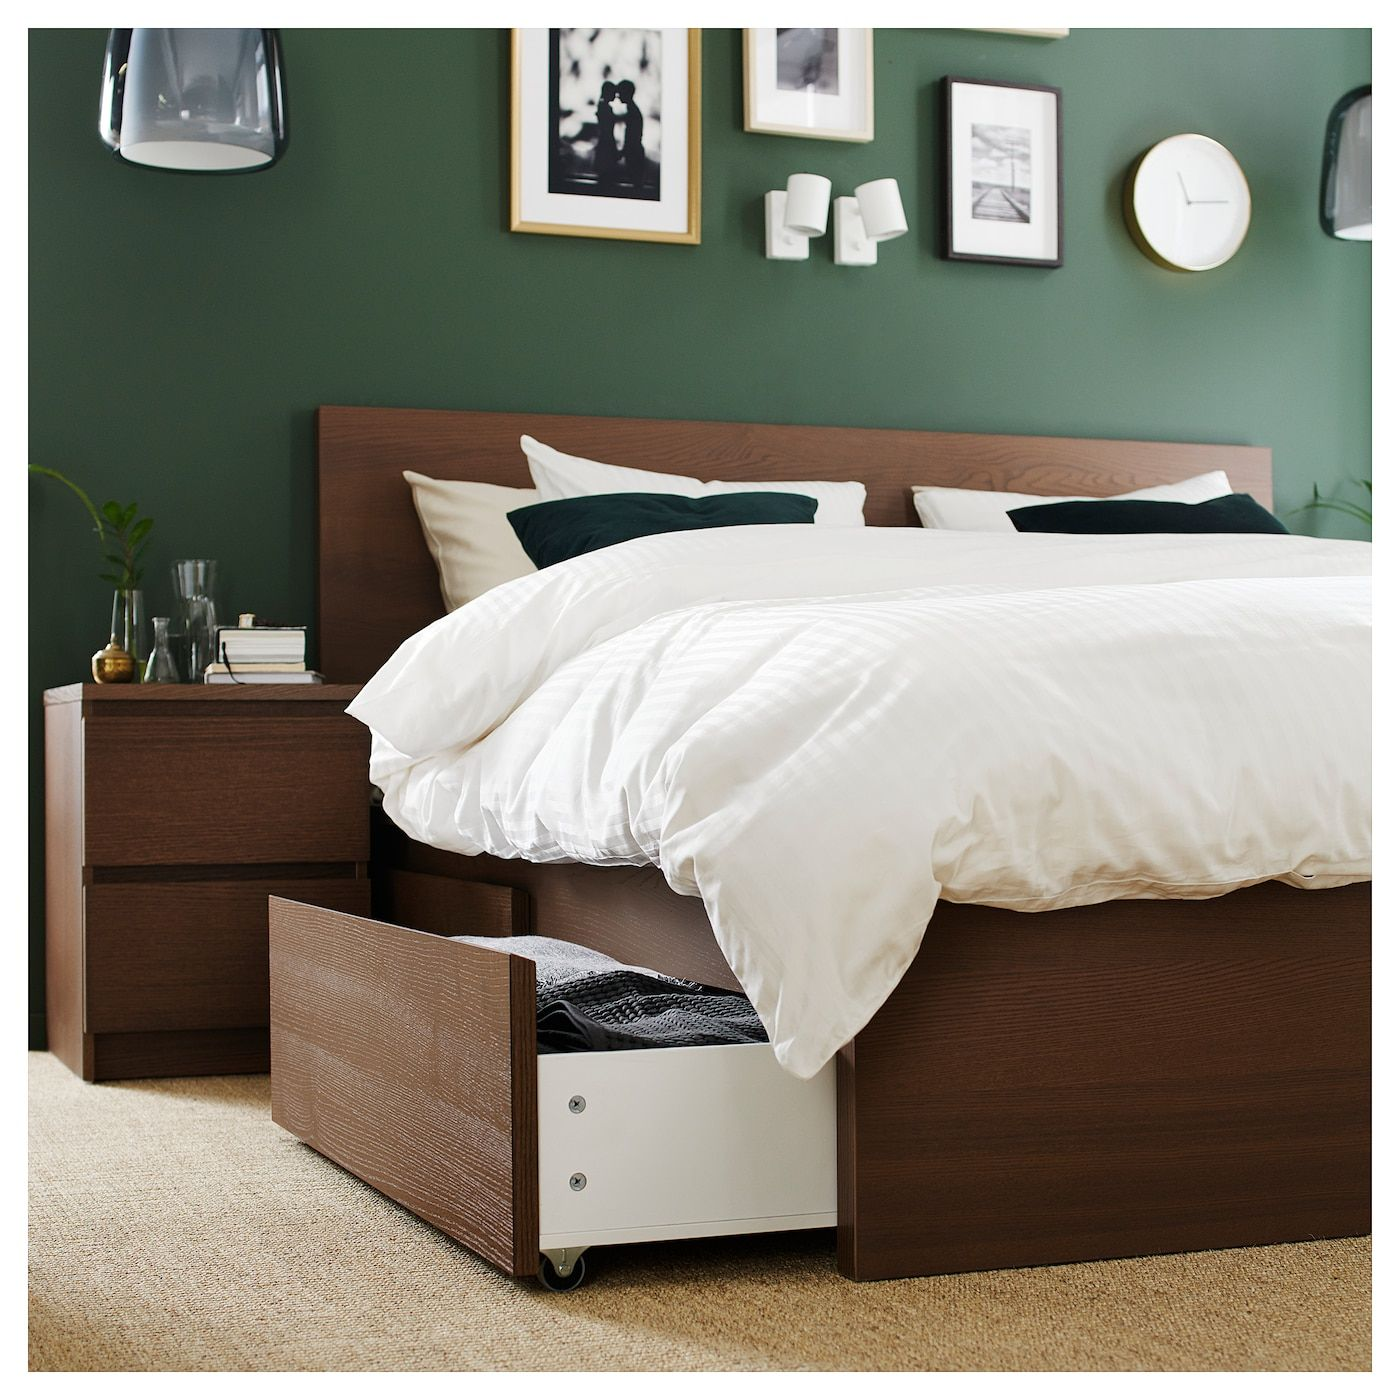 Malm High Bed Frame 4 Storage Boxes Brown Stained Ash Veneer Full In 2020 Malm Bed Frame Malm Bed High Bed Frame